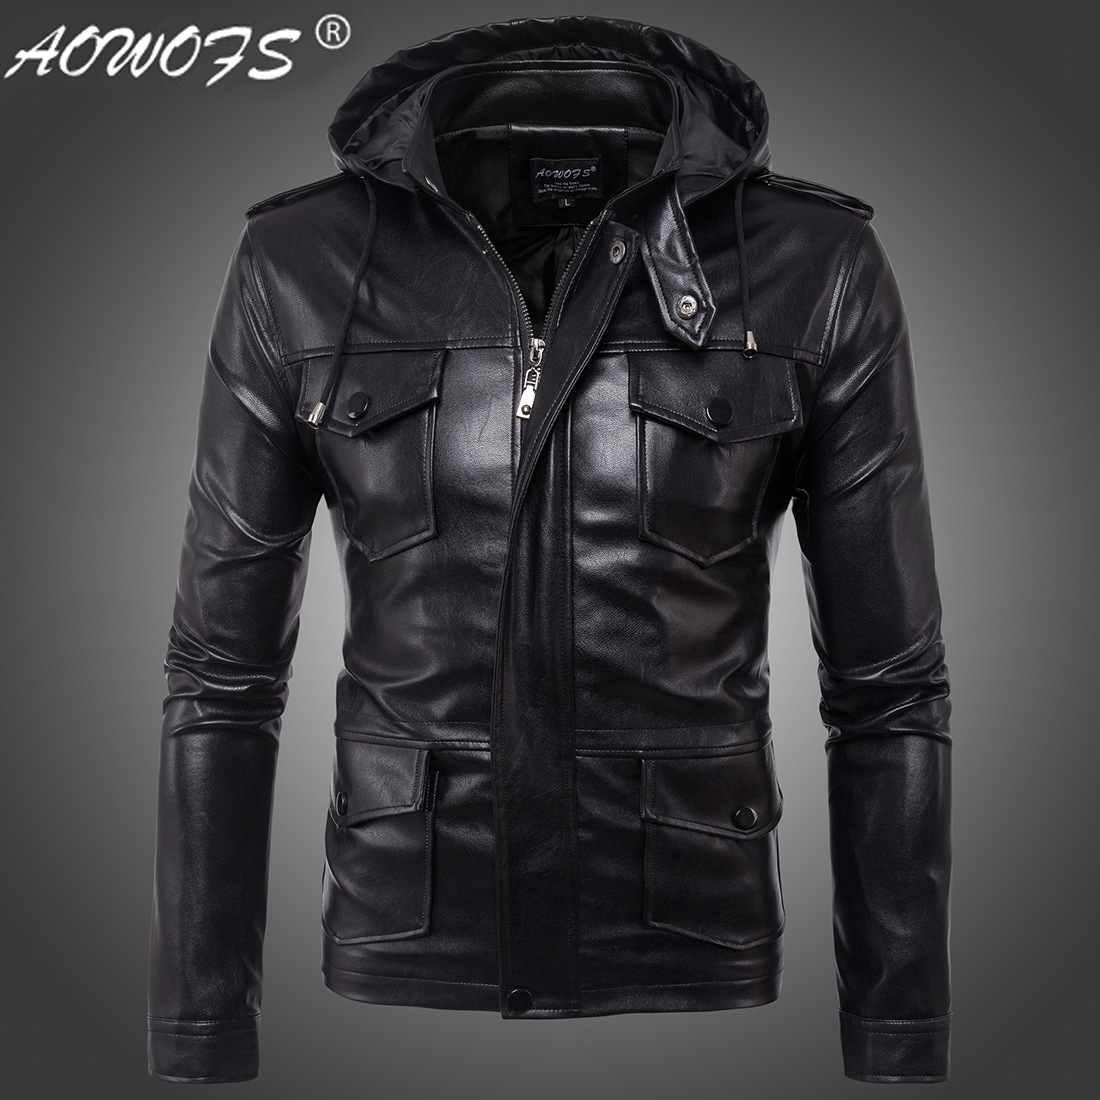 The new 2017 hot leather jackets mens fashion European size new mens leather hooded jacket